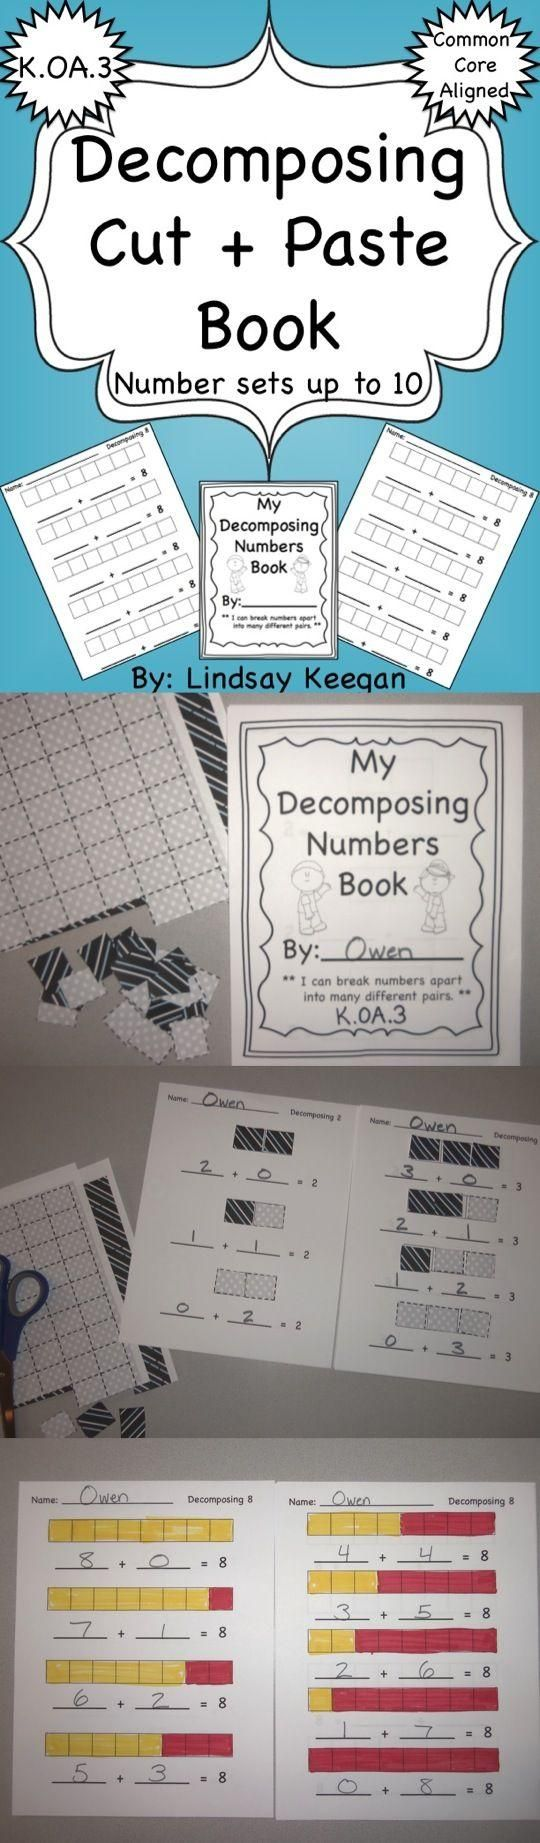 K.OA.3 Decomposing numbers from 2 through 10